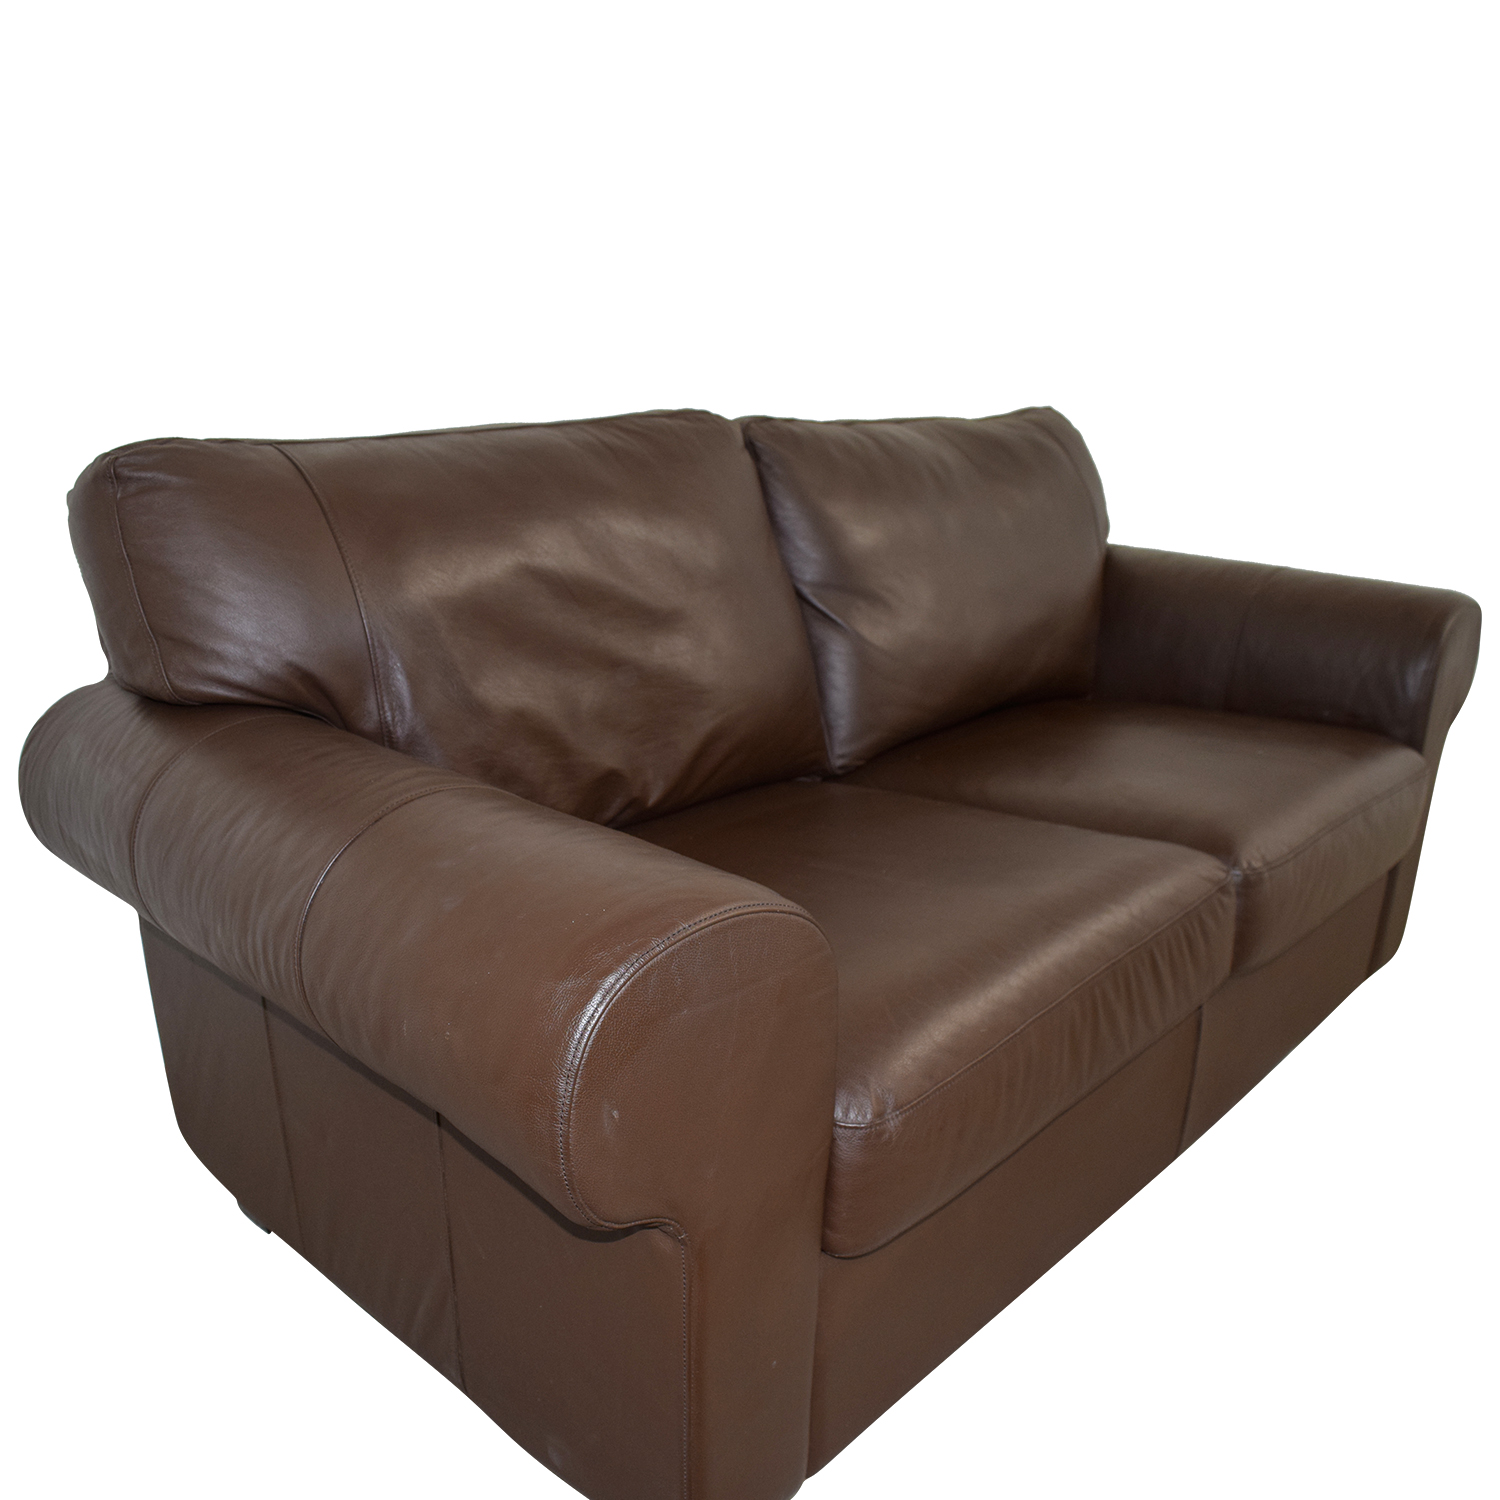 Brown Leather Curved Arm Loveseat used